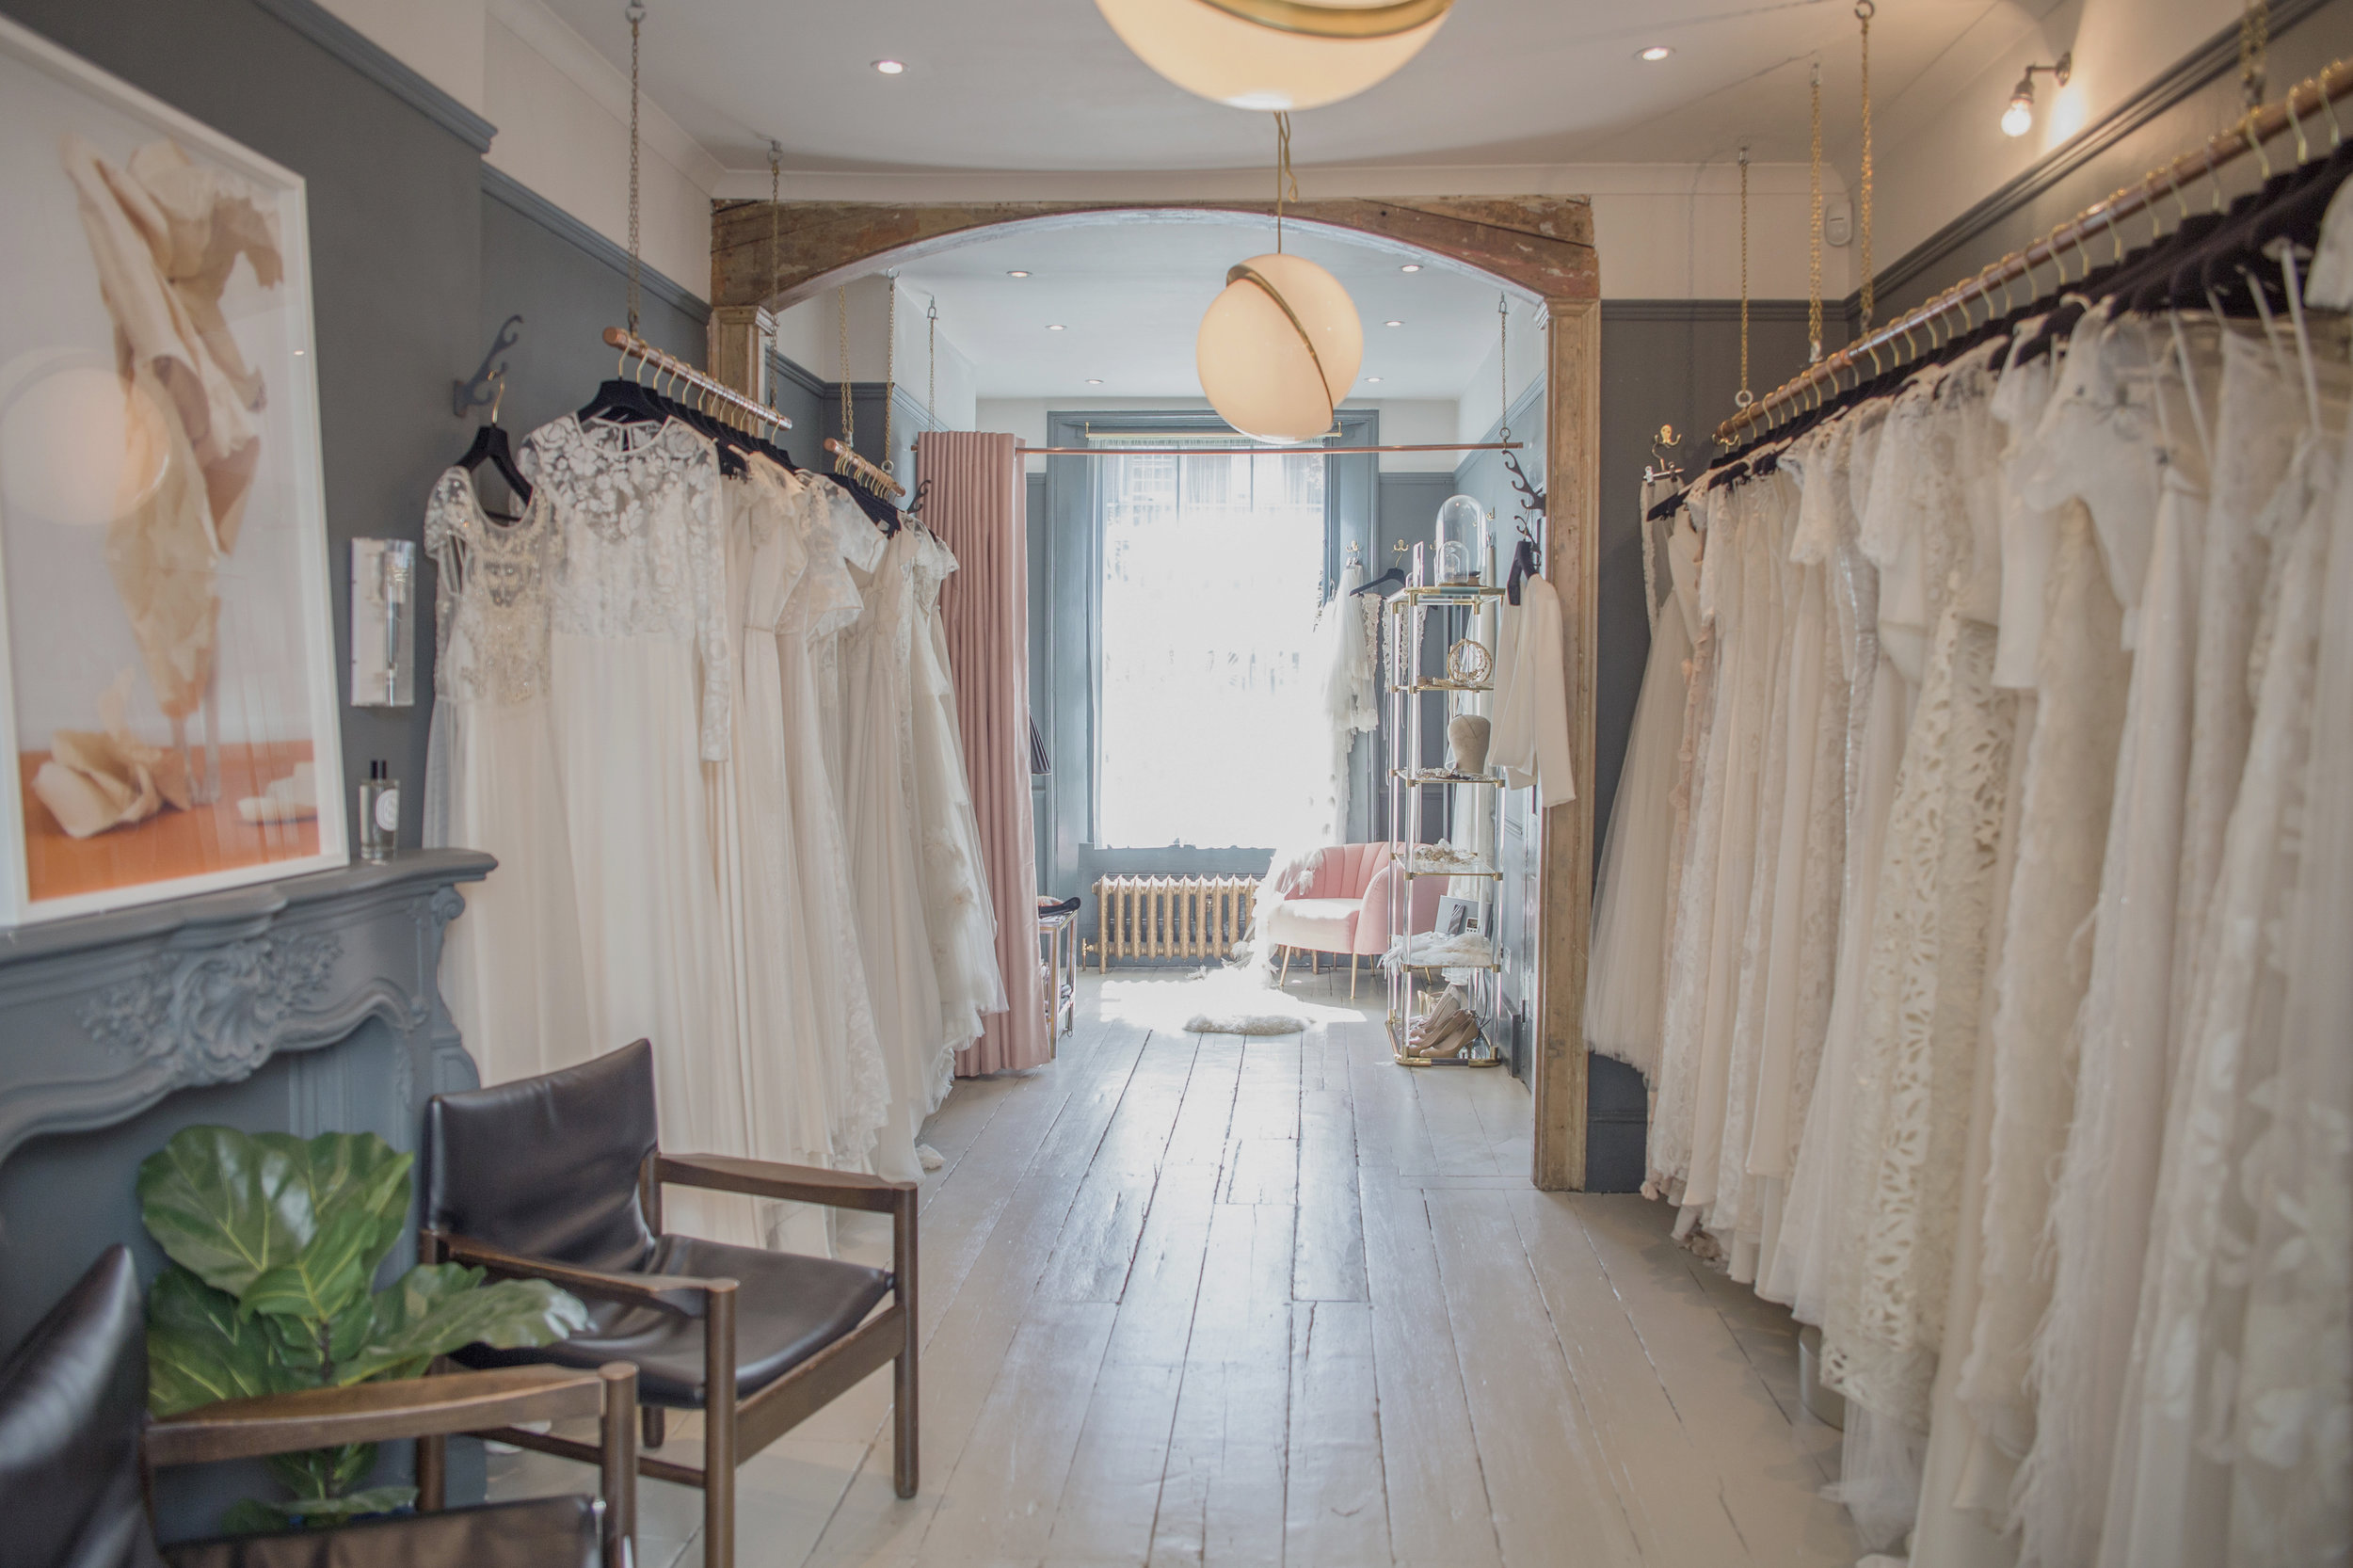 VISIT US IN OUR DRESSING UP BOX OF DREAMS - BOOK AN APPOINTMENT